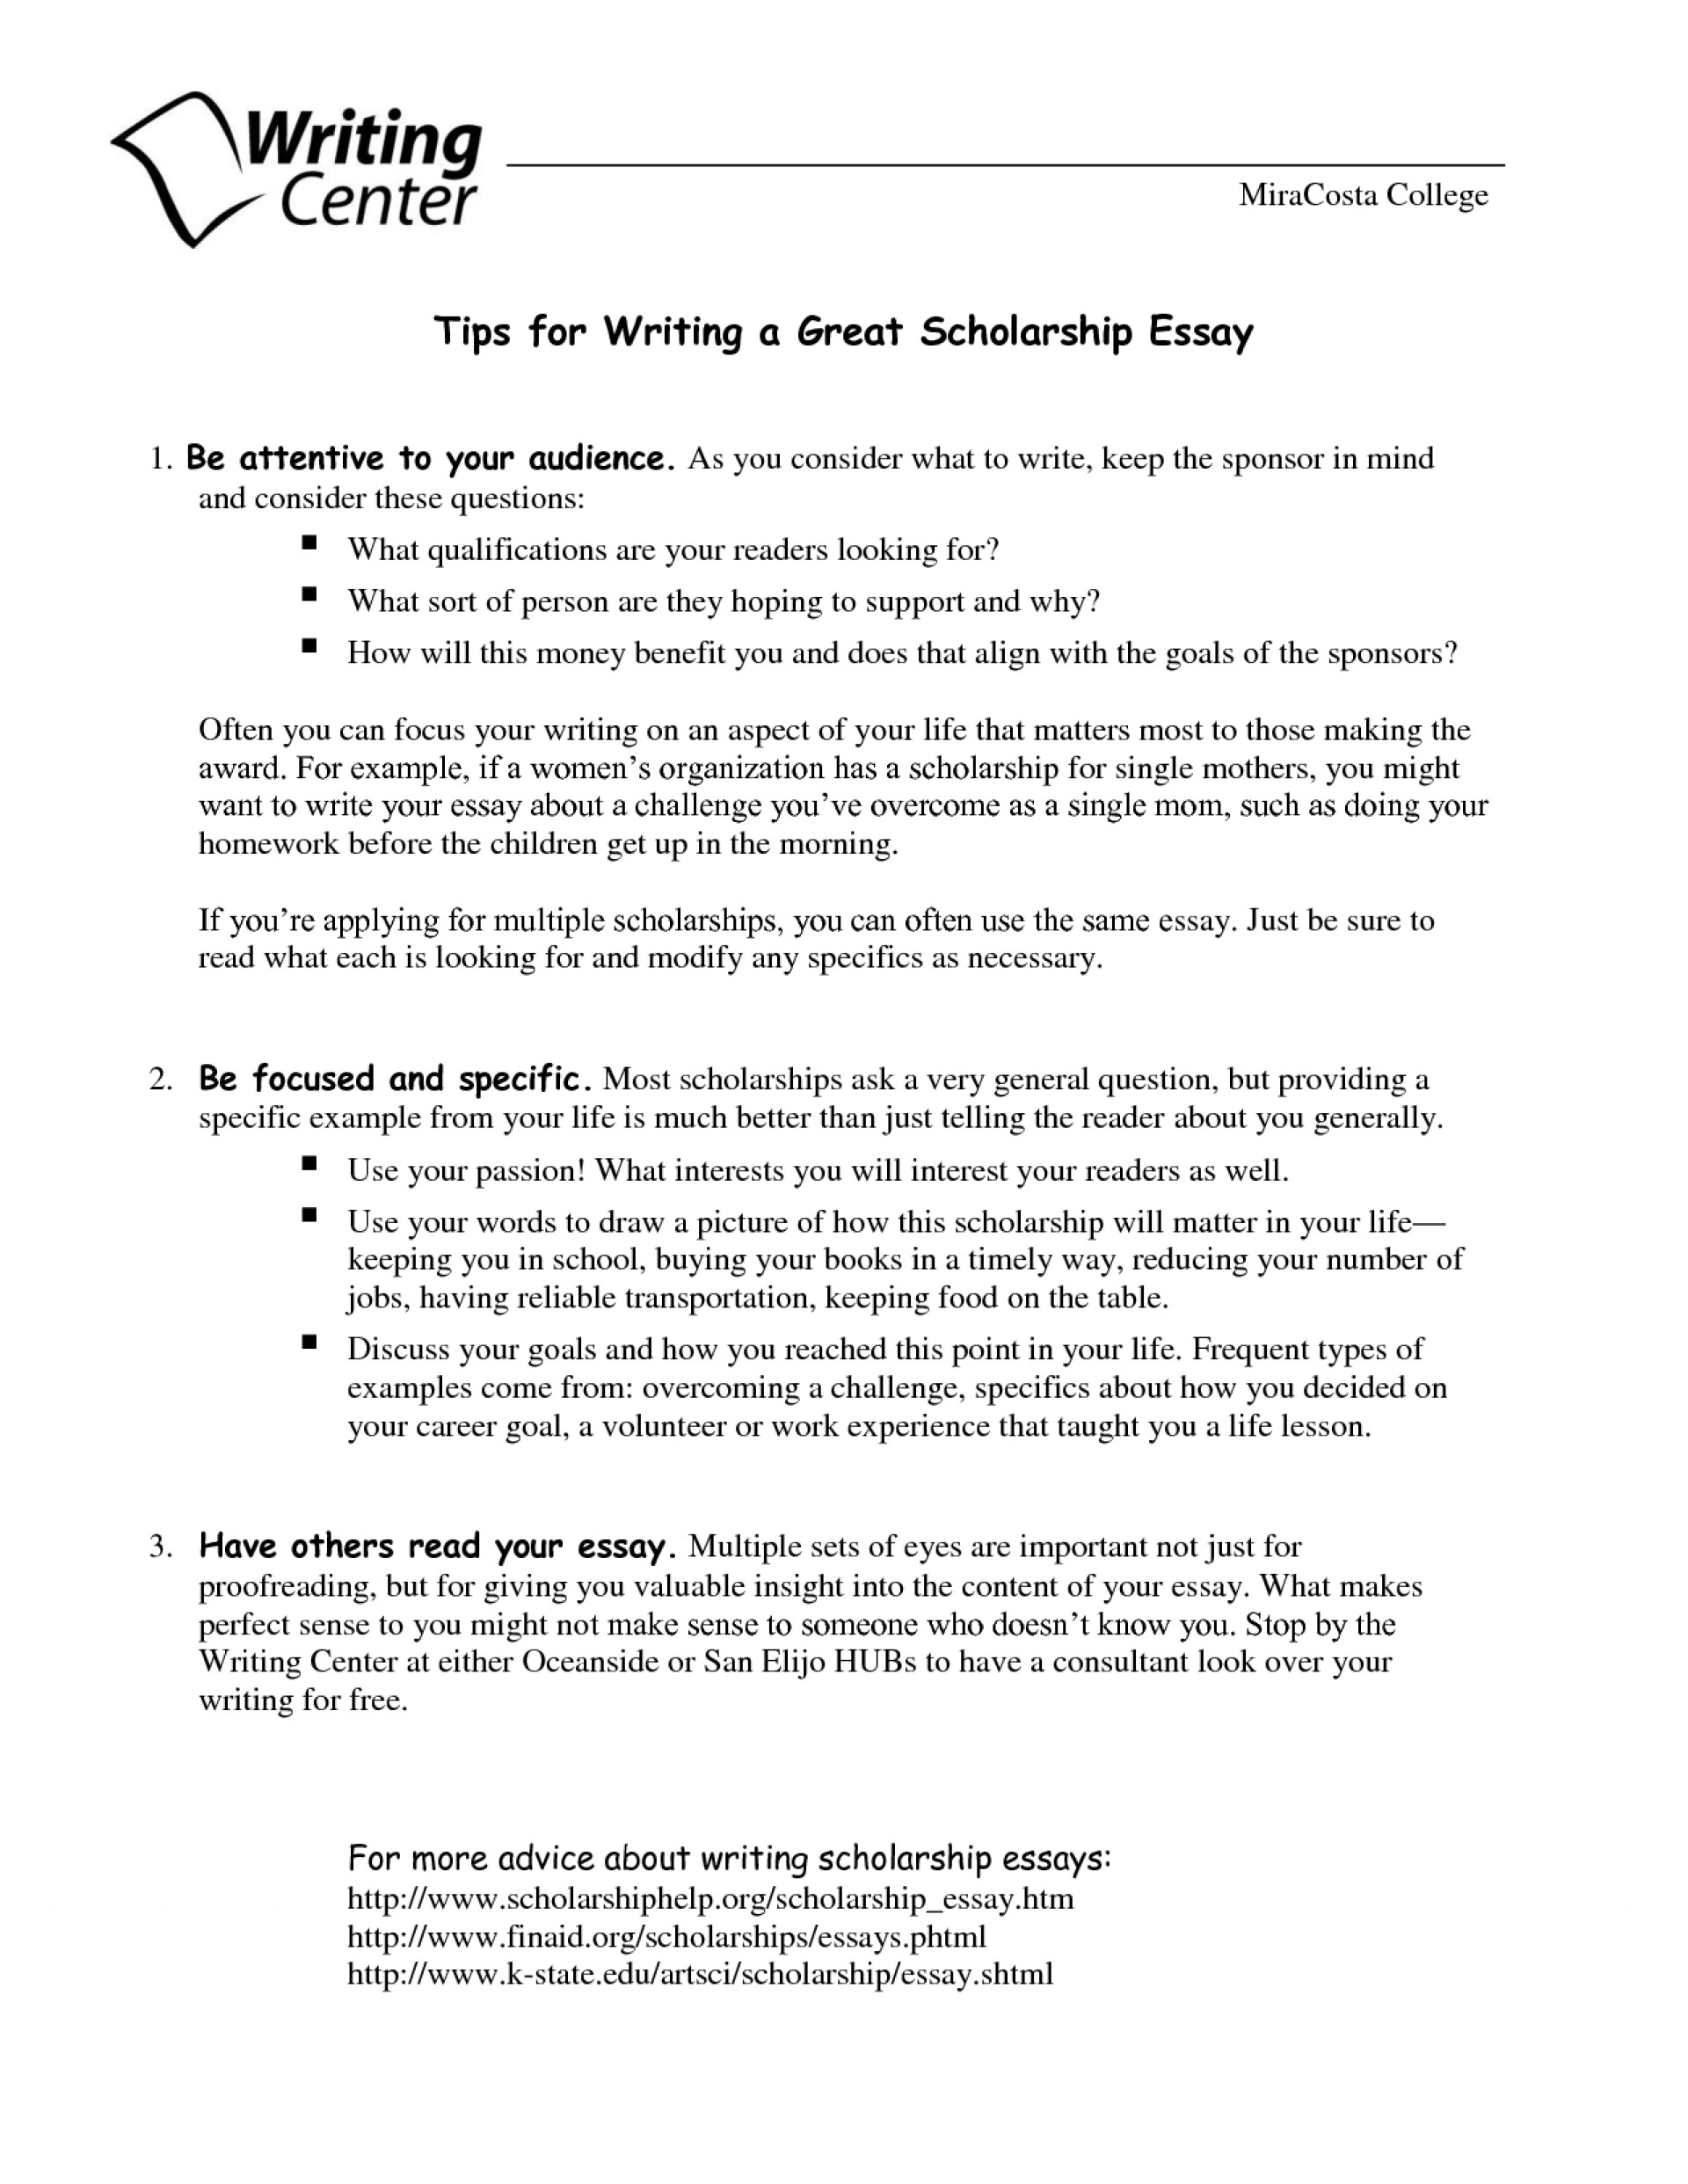 027 Writing Scholarship Essay Structure Format Free Letter Templates Online Jagsa Us College Questions N8cud Winning About Yourself Application Excellent A Good Your Goals 1920